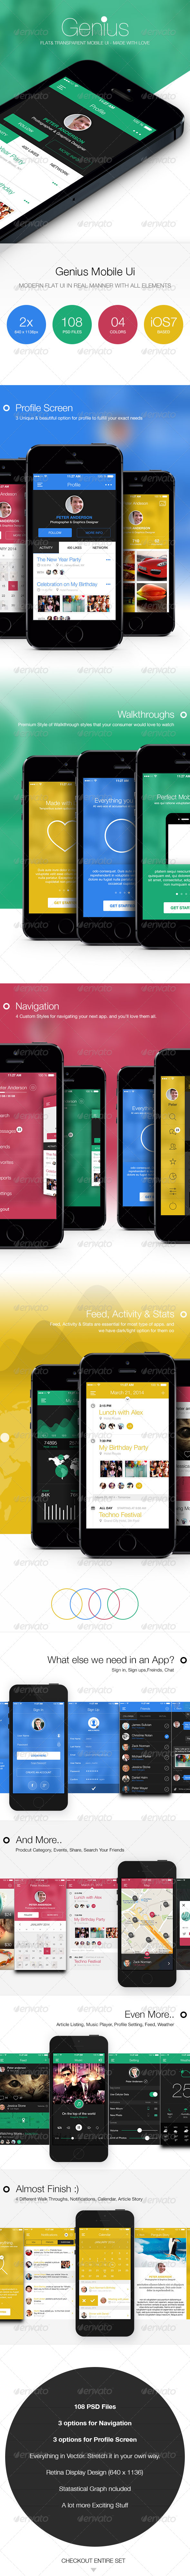 GraphicRiver Genius Flat & Transparent Mobile Ui 7576159